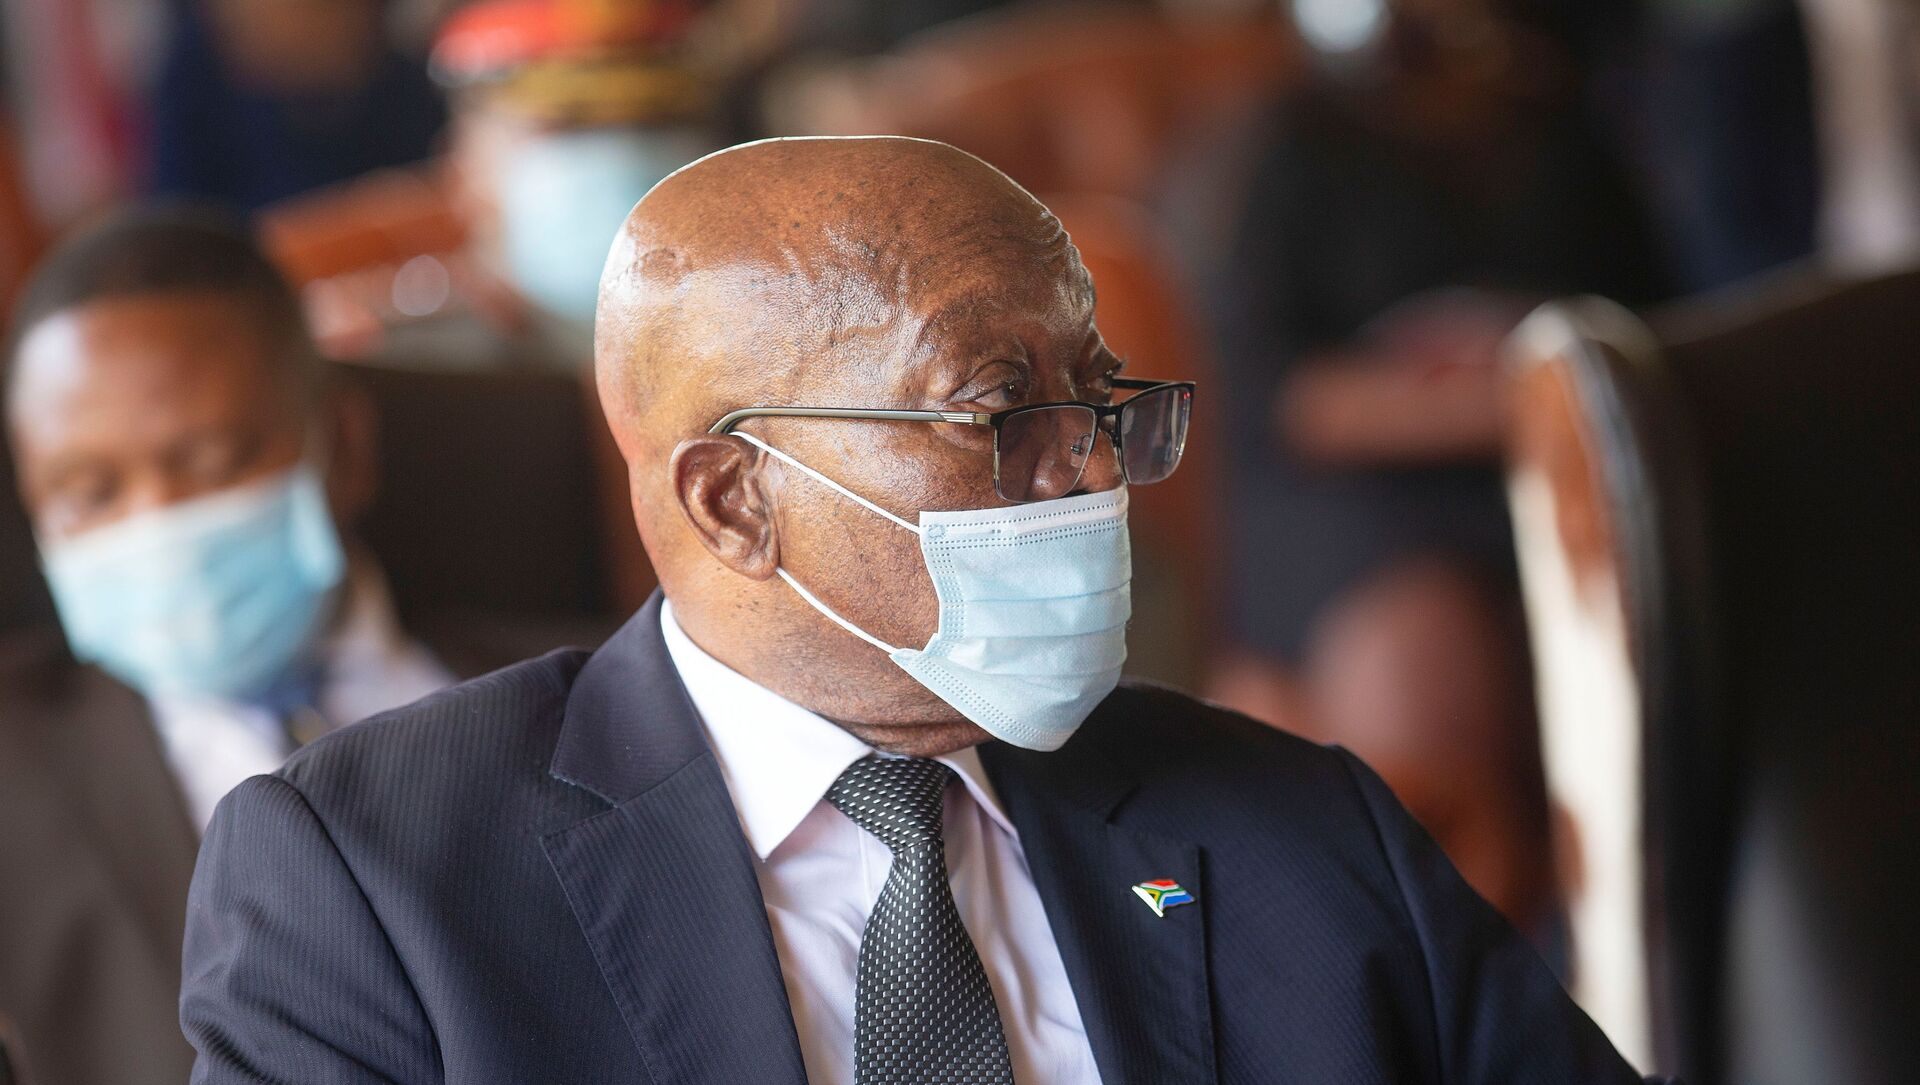 Former South African President Jacob Zuma attends the memorial service for Zulu King Goodwill Zwelithini in Nongoma - Sputnik International, 1920, 17.05.2021